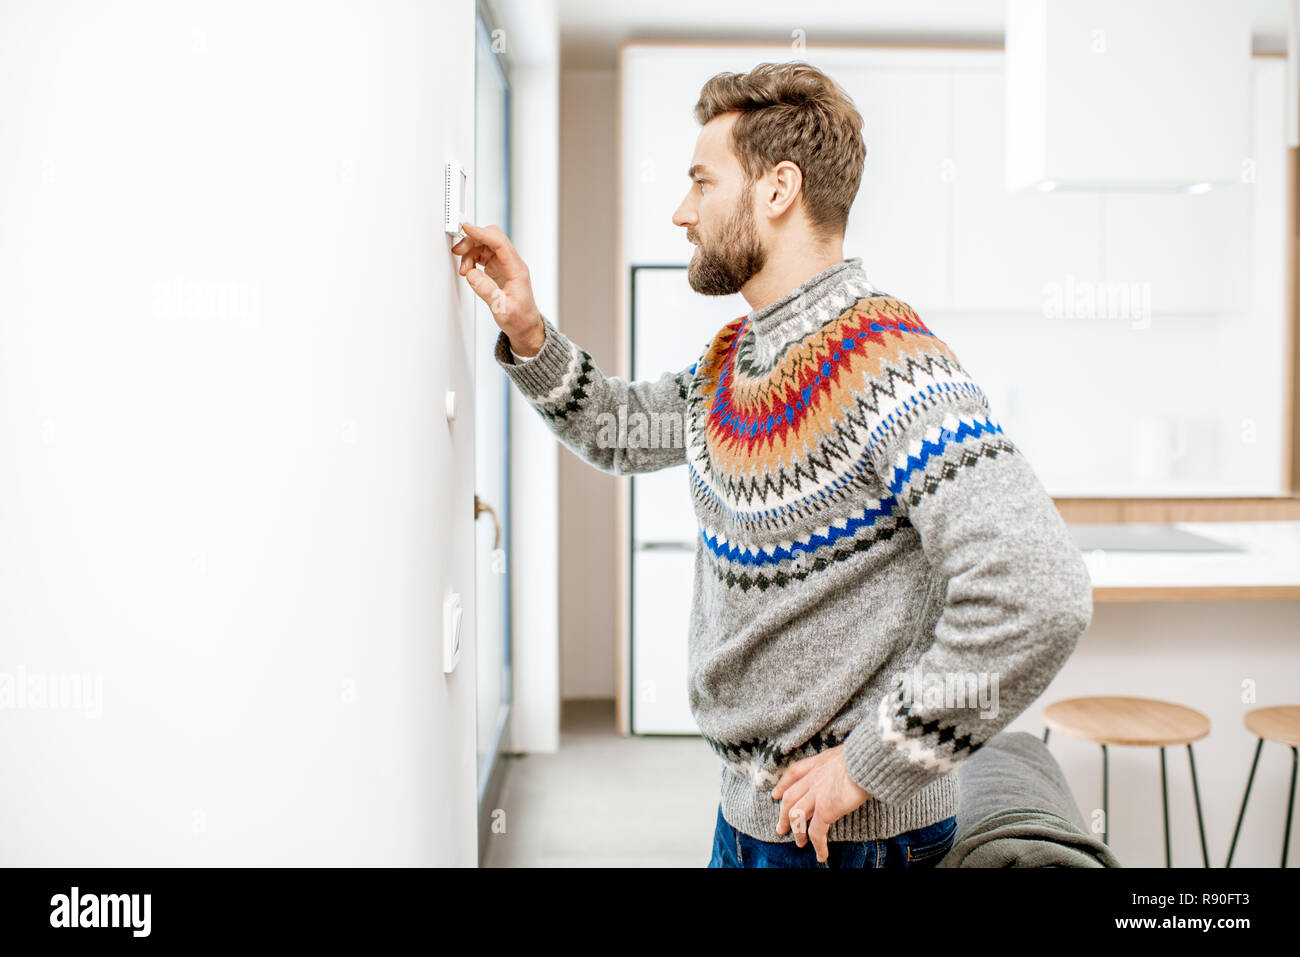 Man in sweater adjusting room temperature with electronic thermostat at home - Stock Image